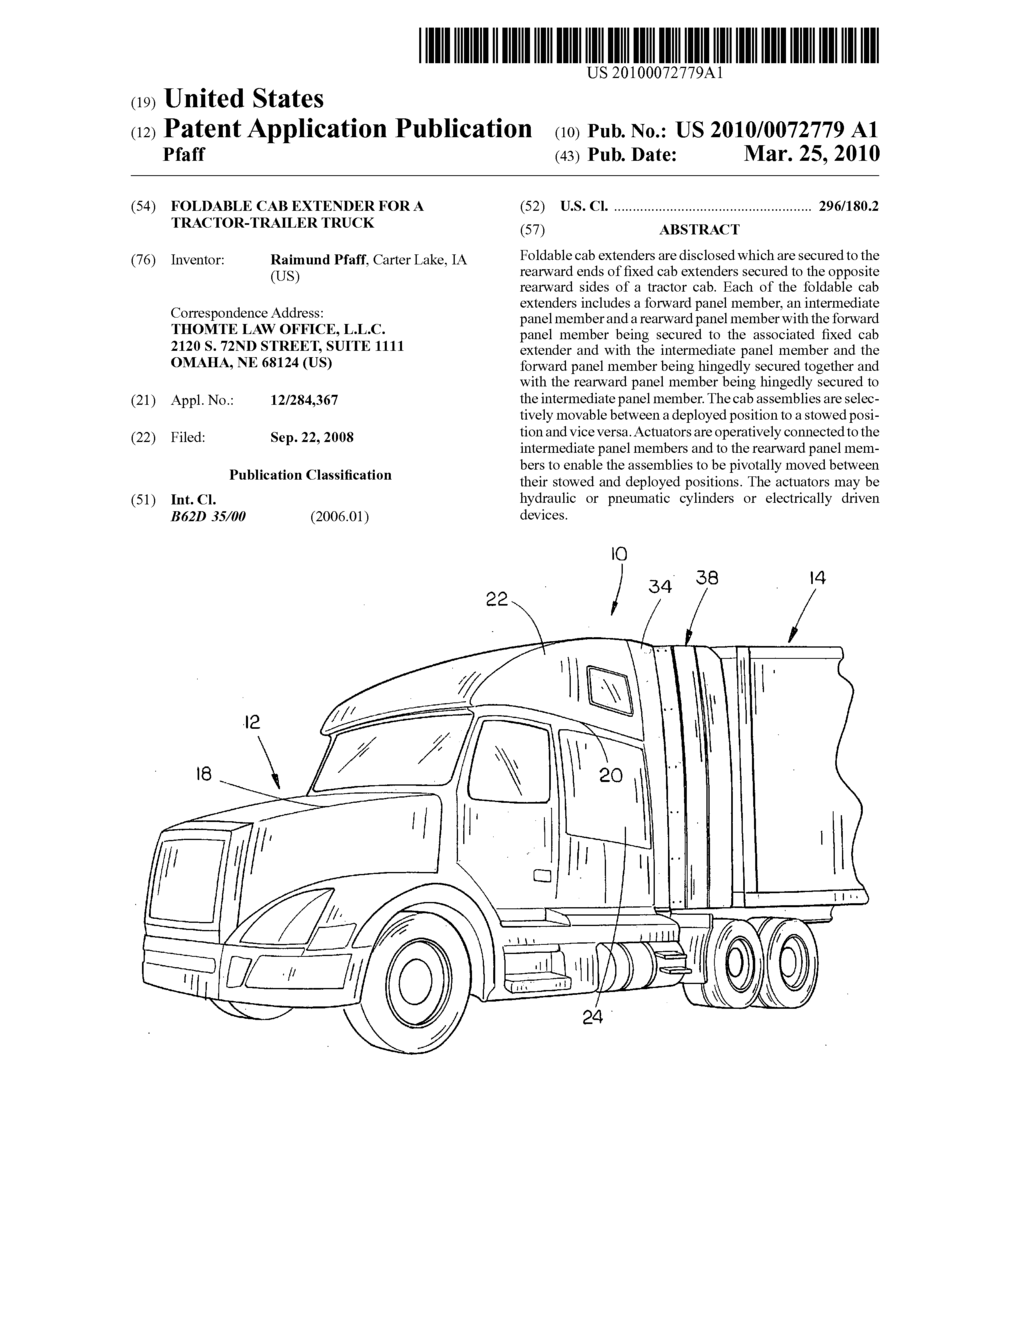 hight resolution of foldable cab extender for a tractor trailer truck diagram foldable cab extender for a tractor trailer